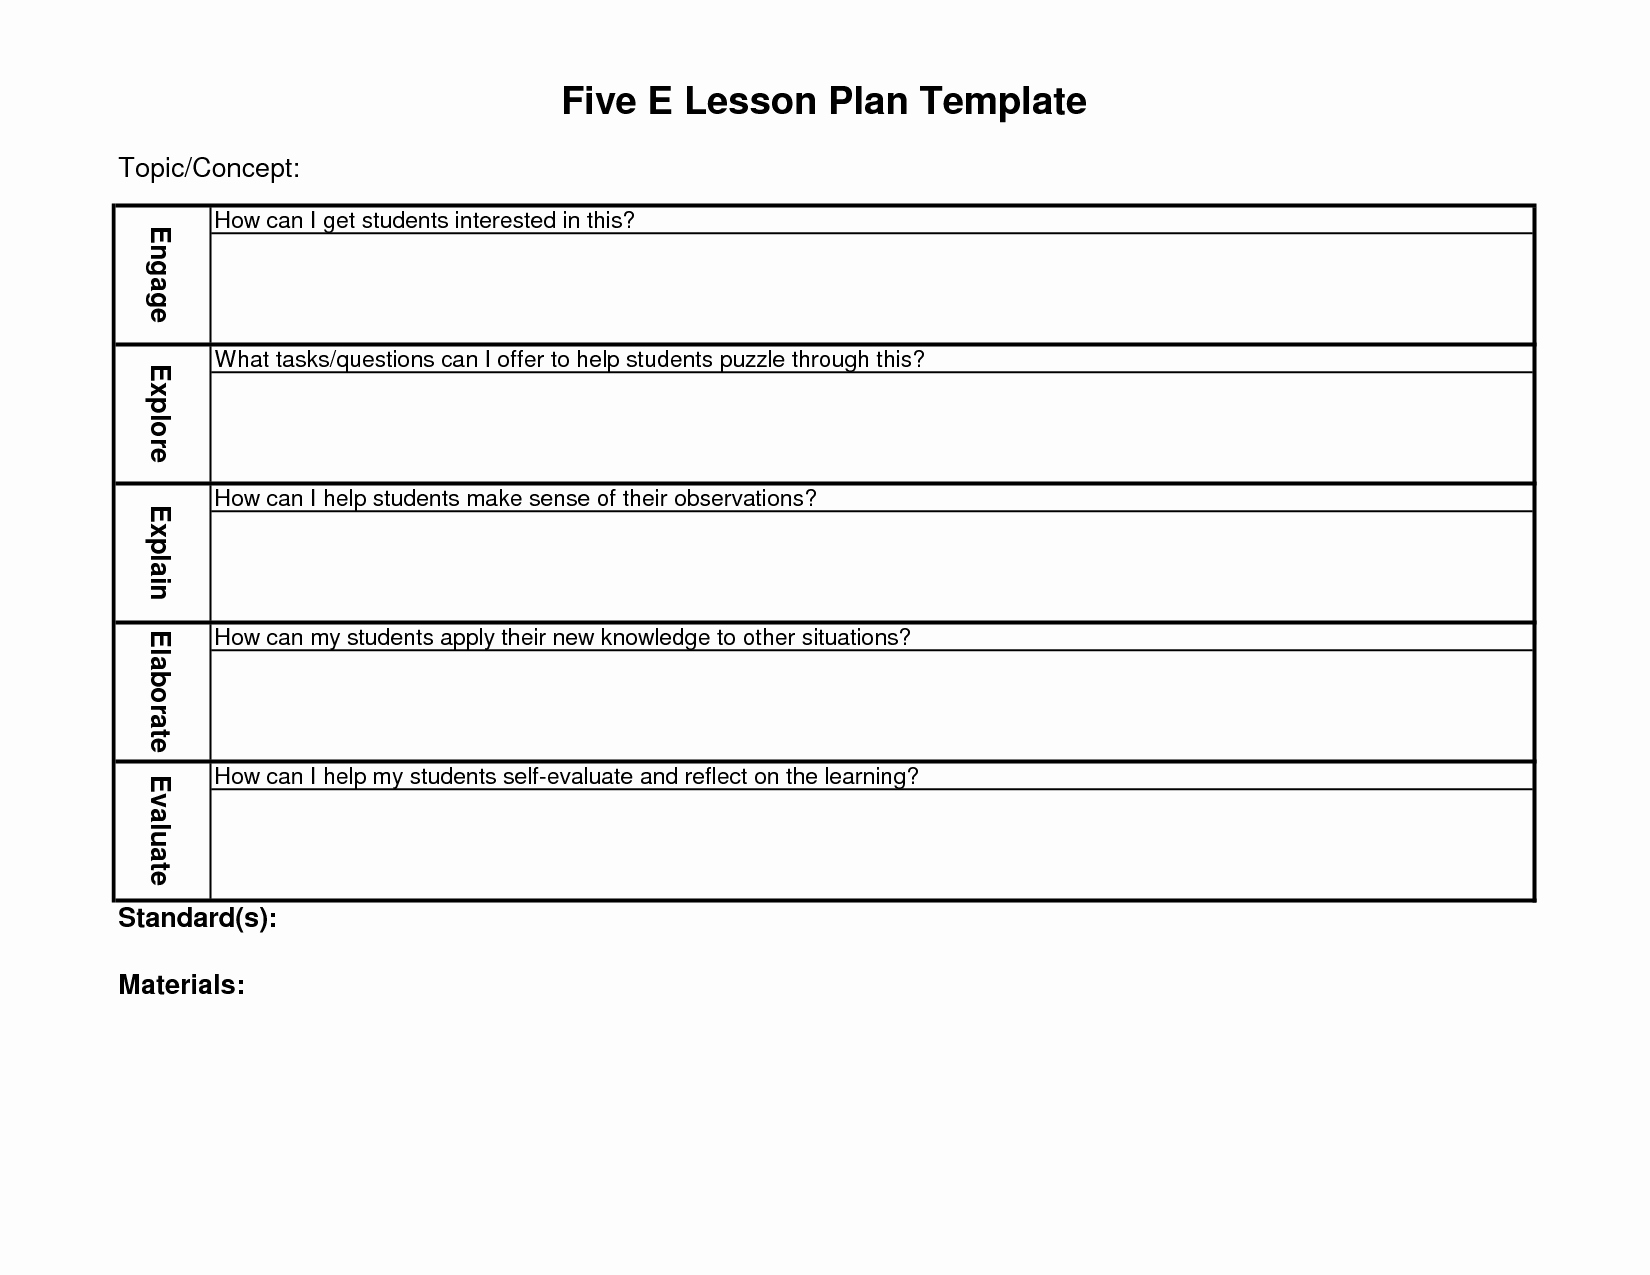 Texas Lesson Plan Template Elegant 5e Lesson Plan Template Texas for Math Ngss